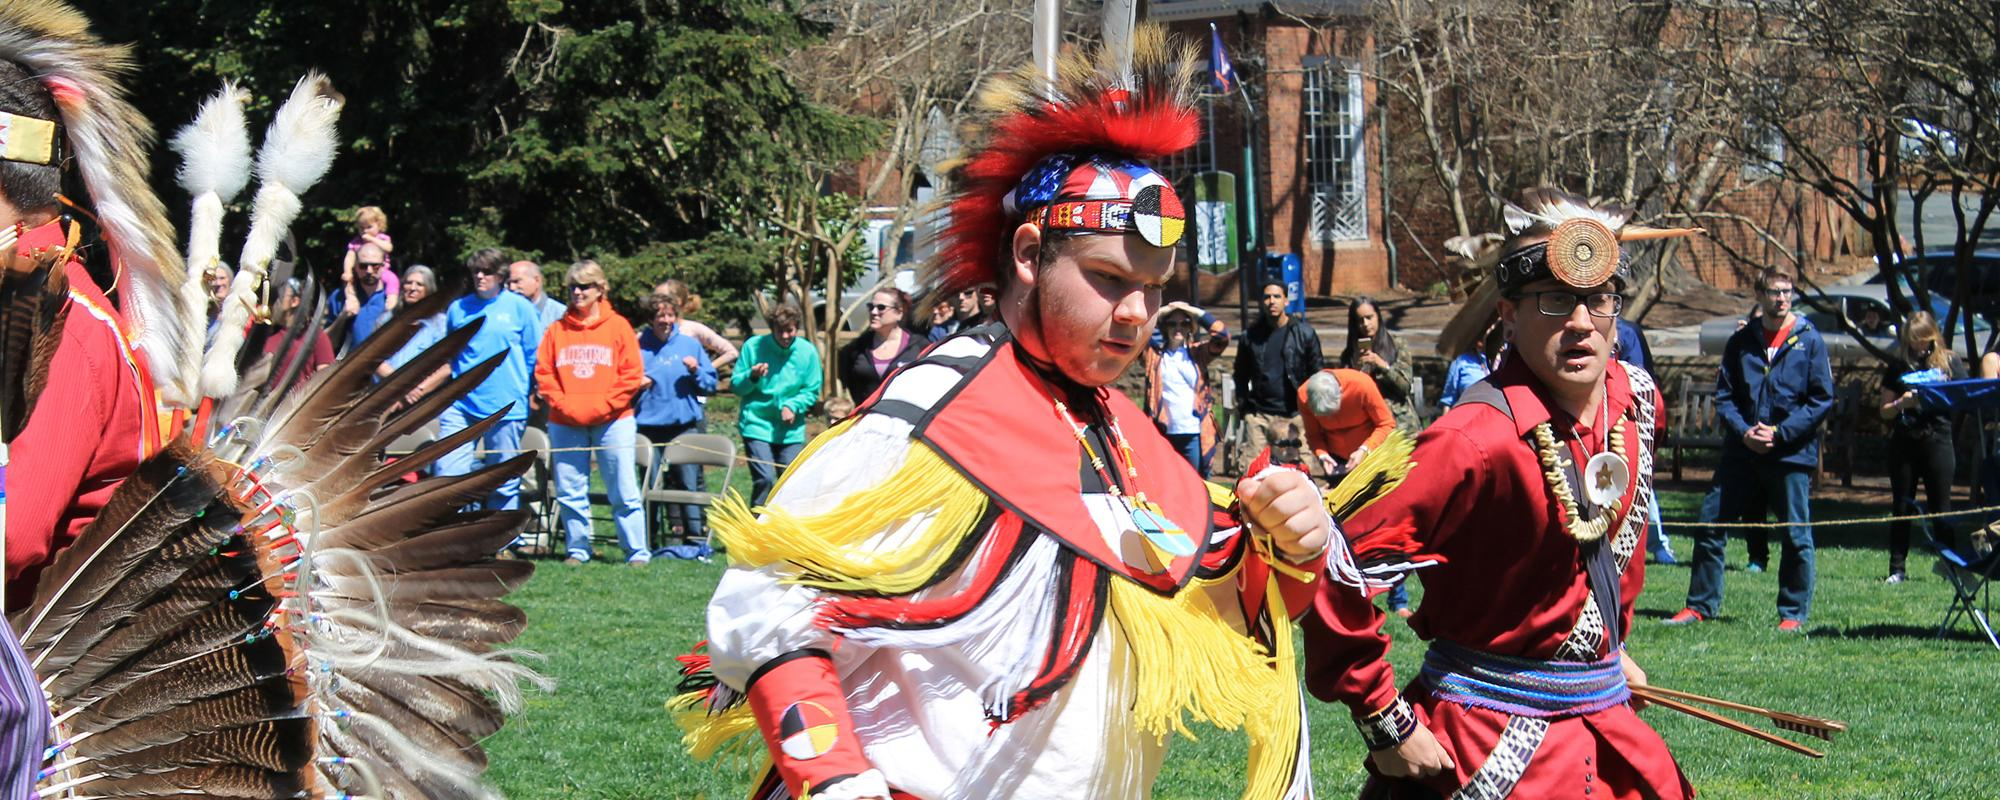 Native American Student Union Powwow